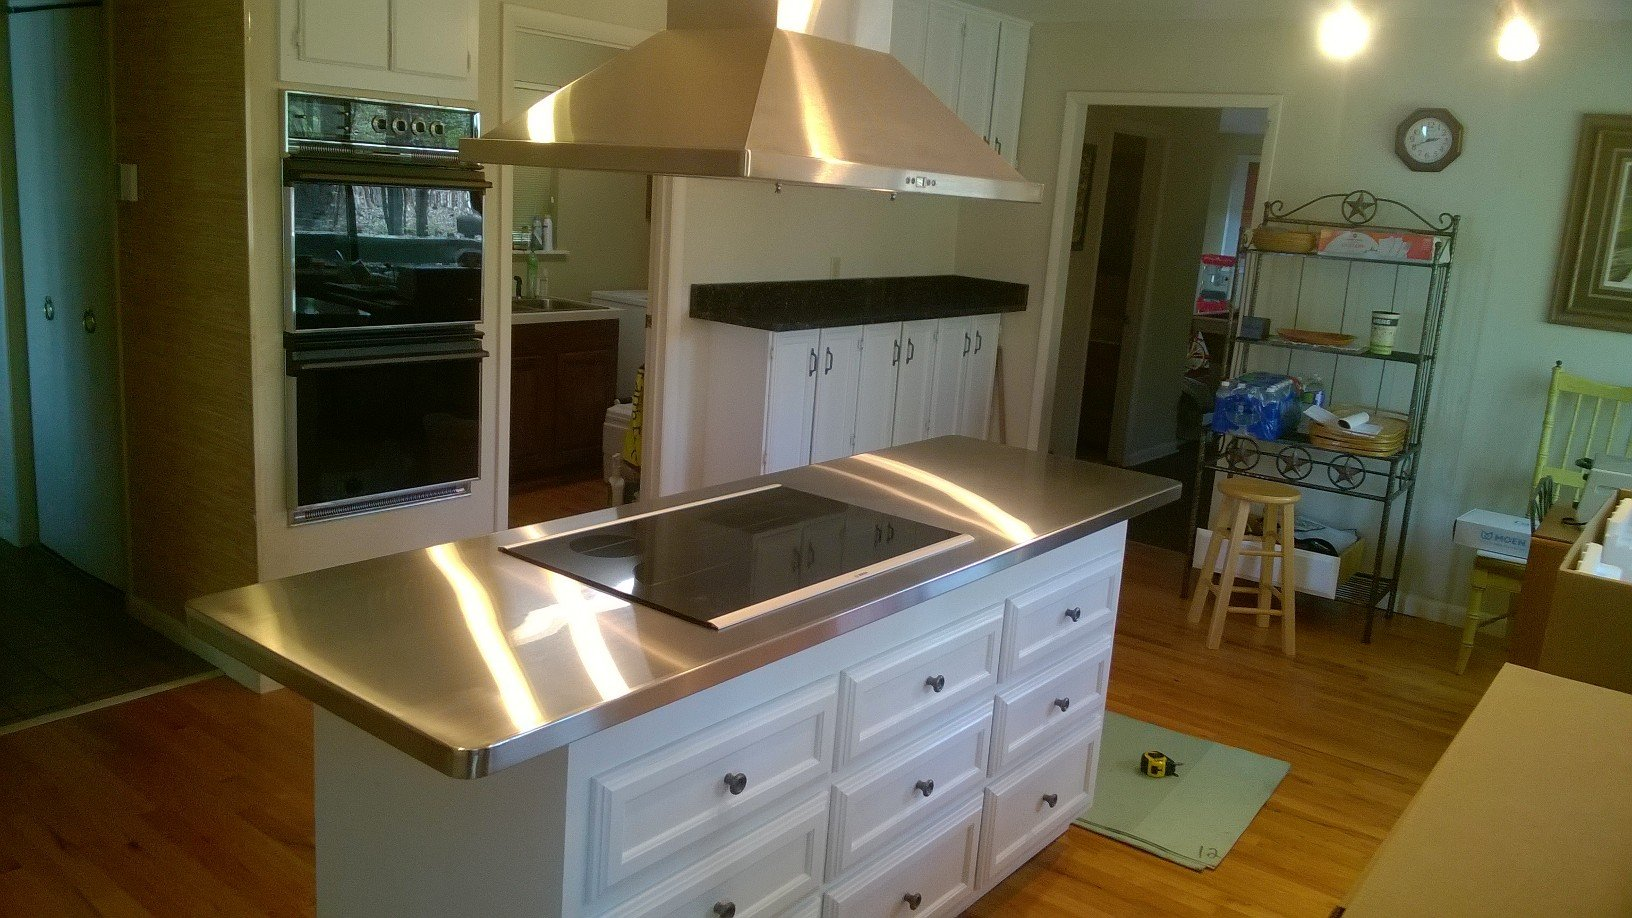 Residential Kitchen Stainless Steel Island Top